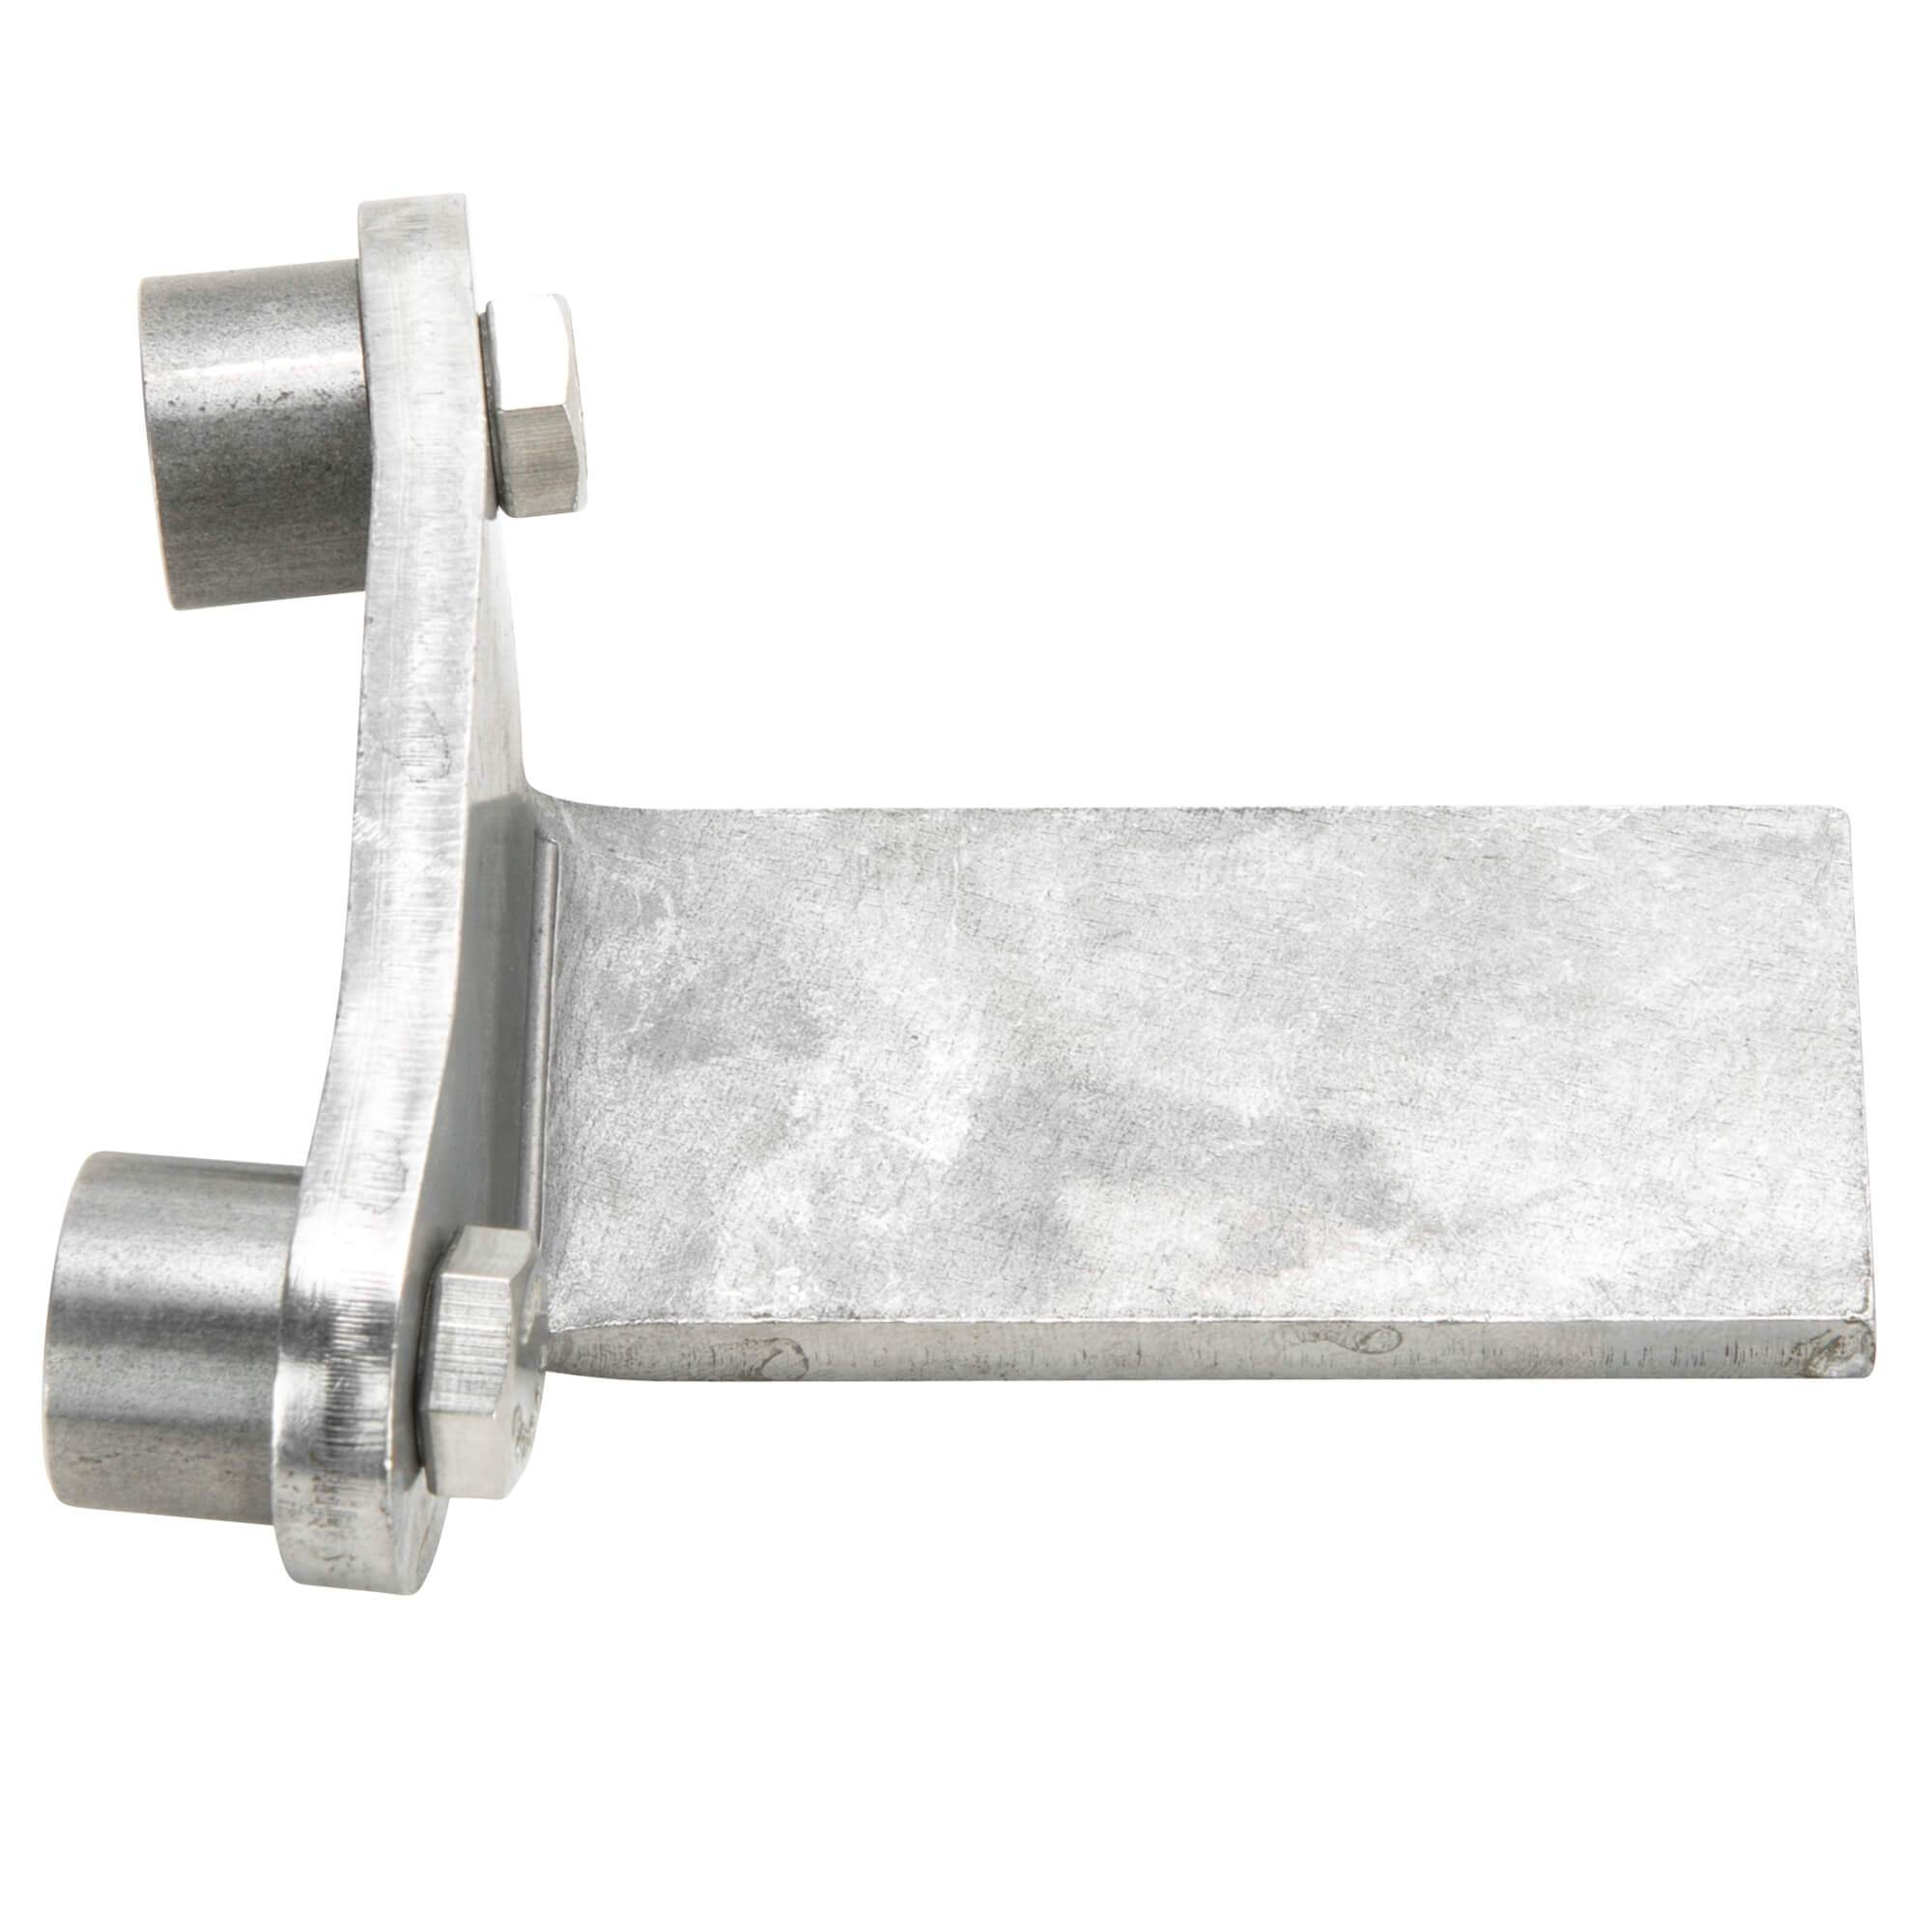 Motorcycle Weld-On Coil-Over Shock Mounting Bracket C-Silver